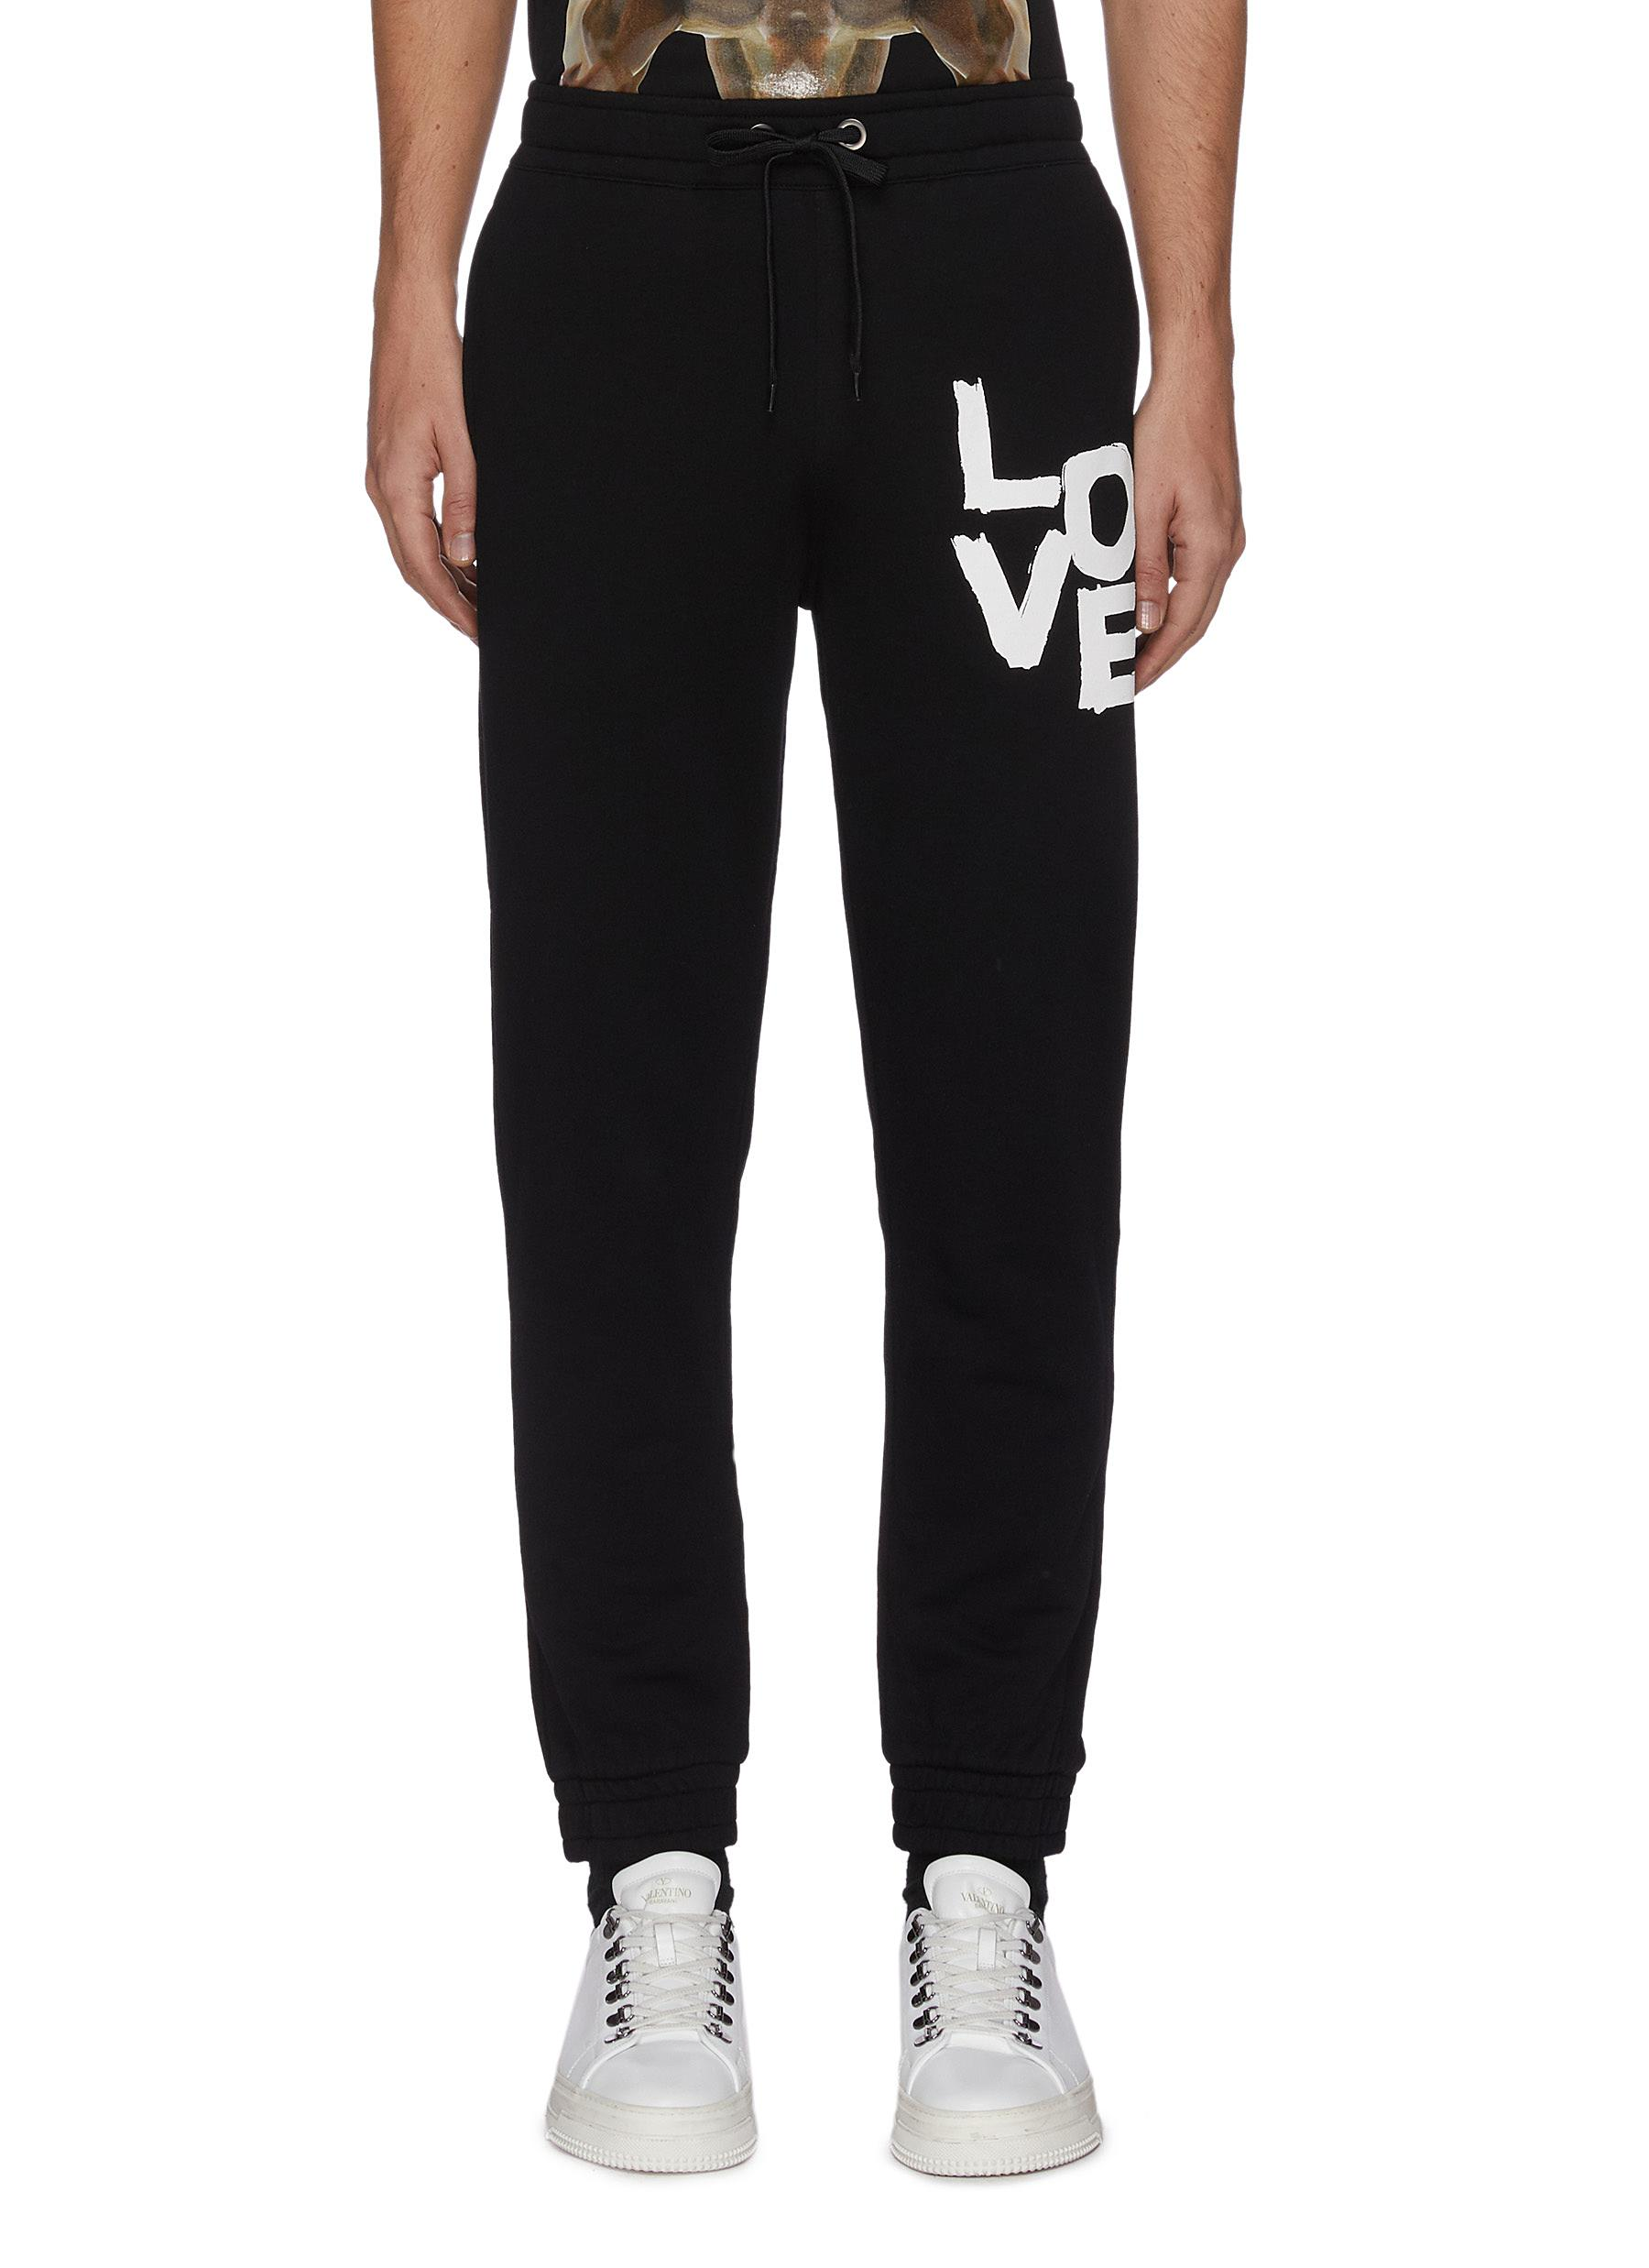 Burberry 'CAMILO' LOVE PRINT COTTON SWEATPANTS